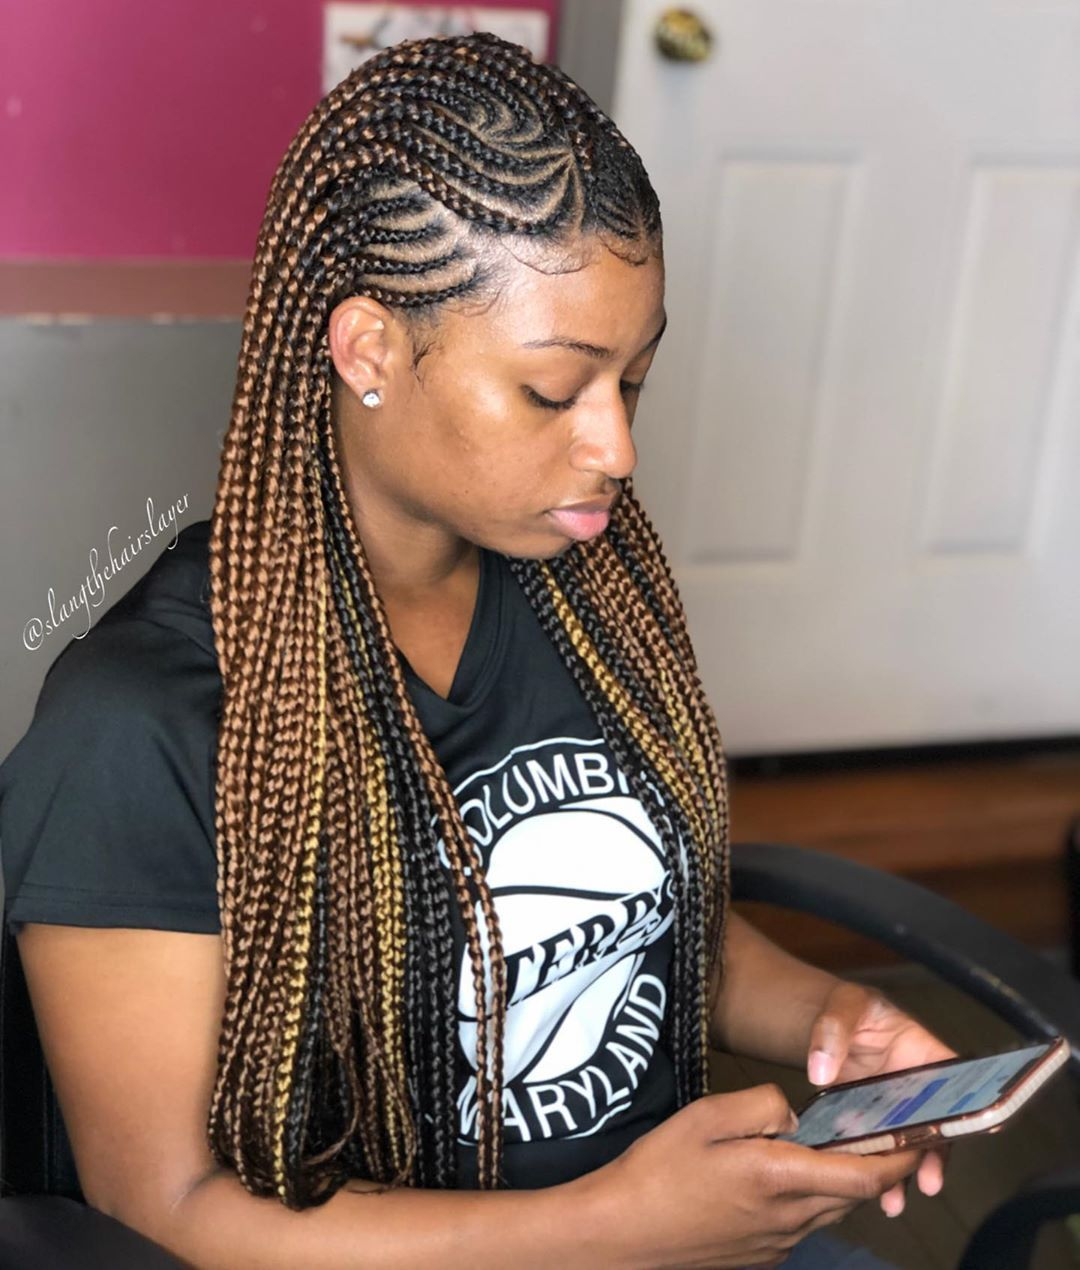 New 2020 Braided Hairstyles Choose Your Favourite Braids Colour Braided Hairstyles Hair Styles Cornrow Braid Styles